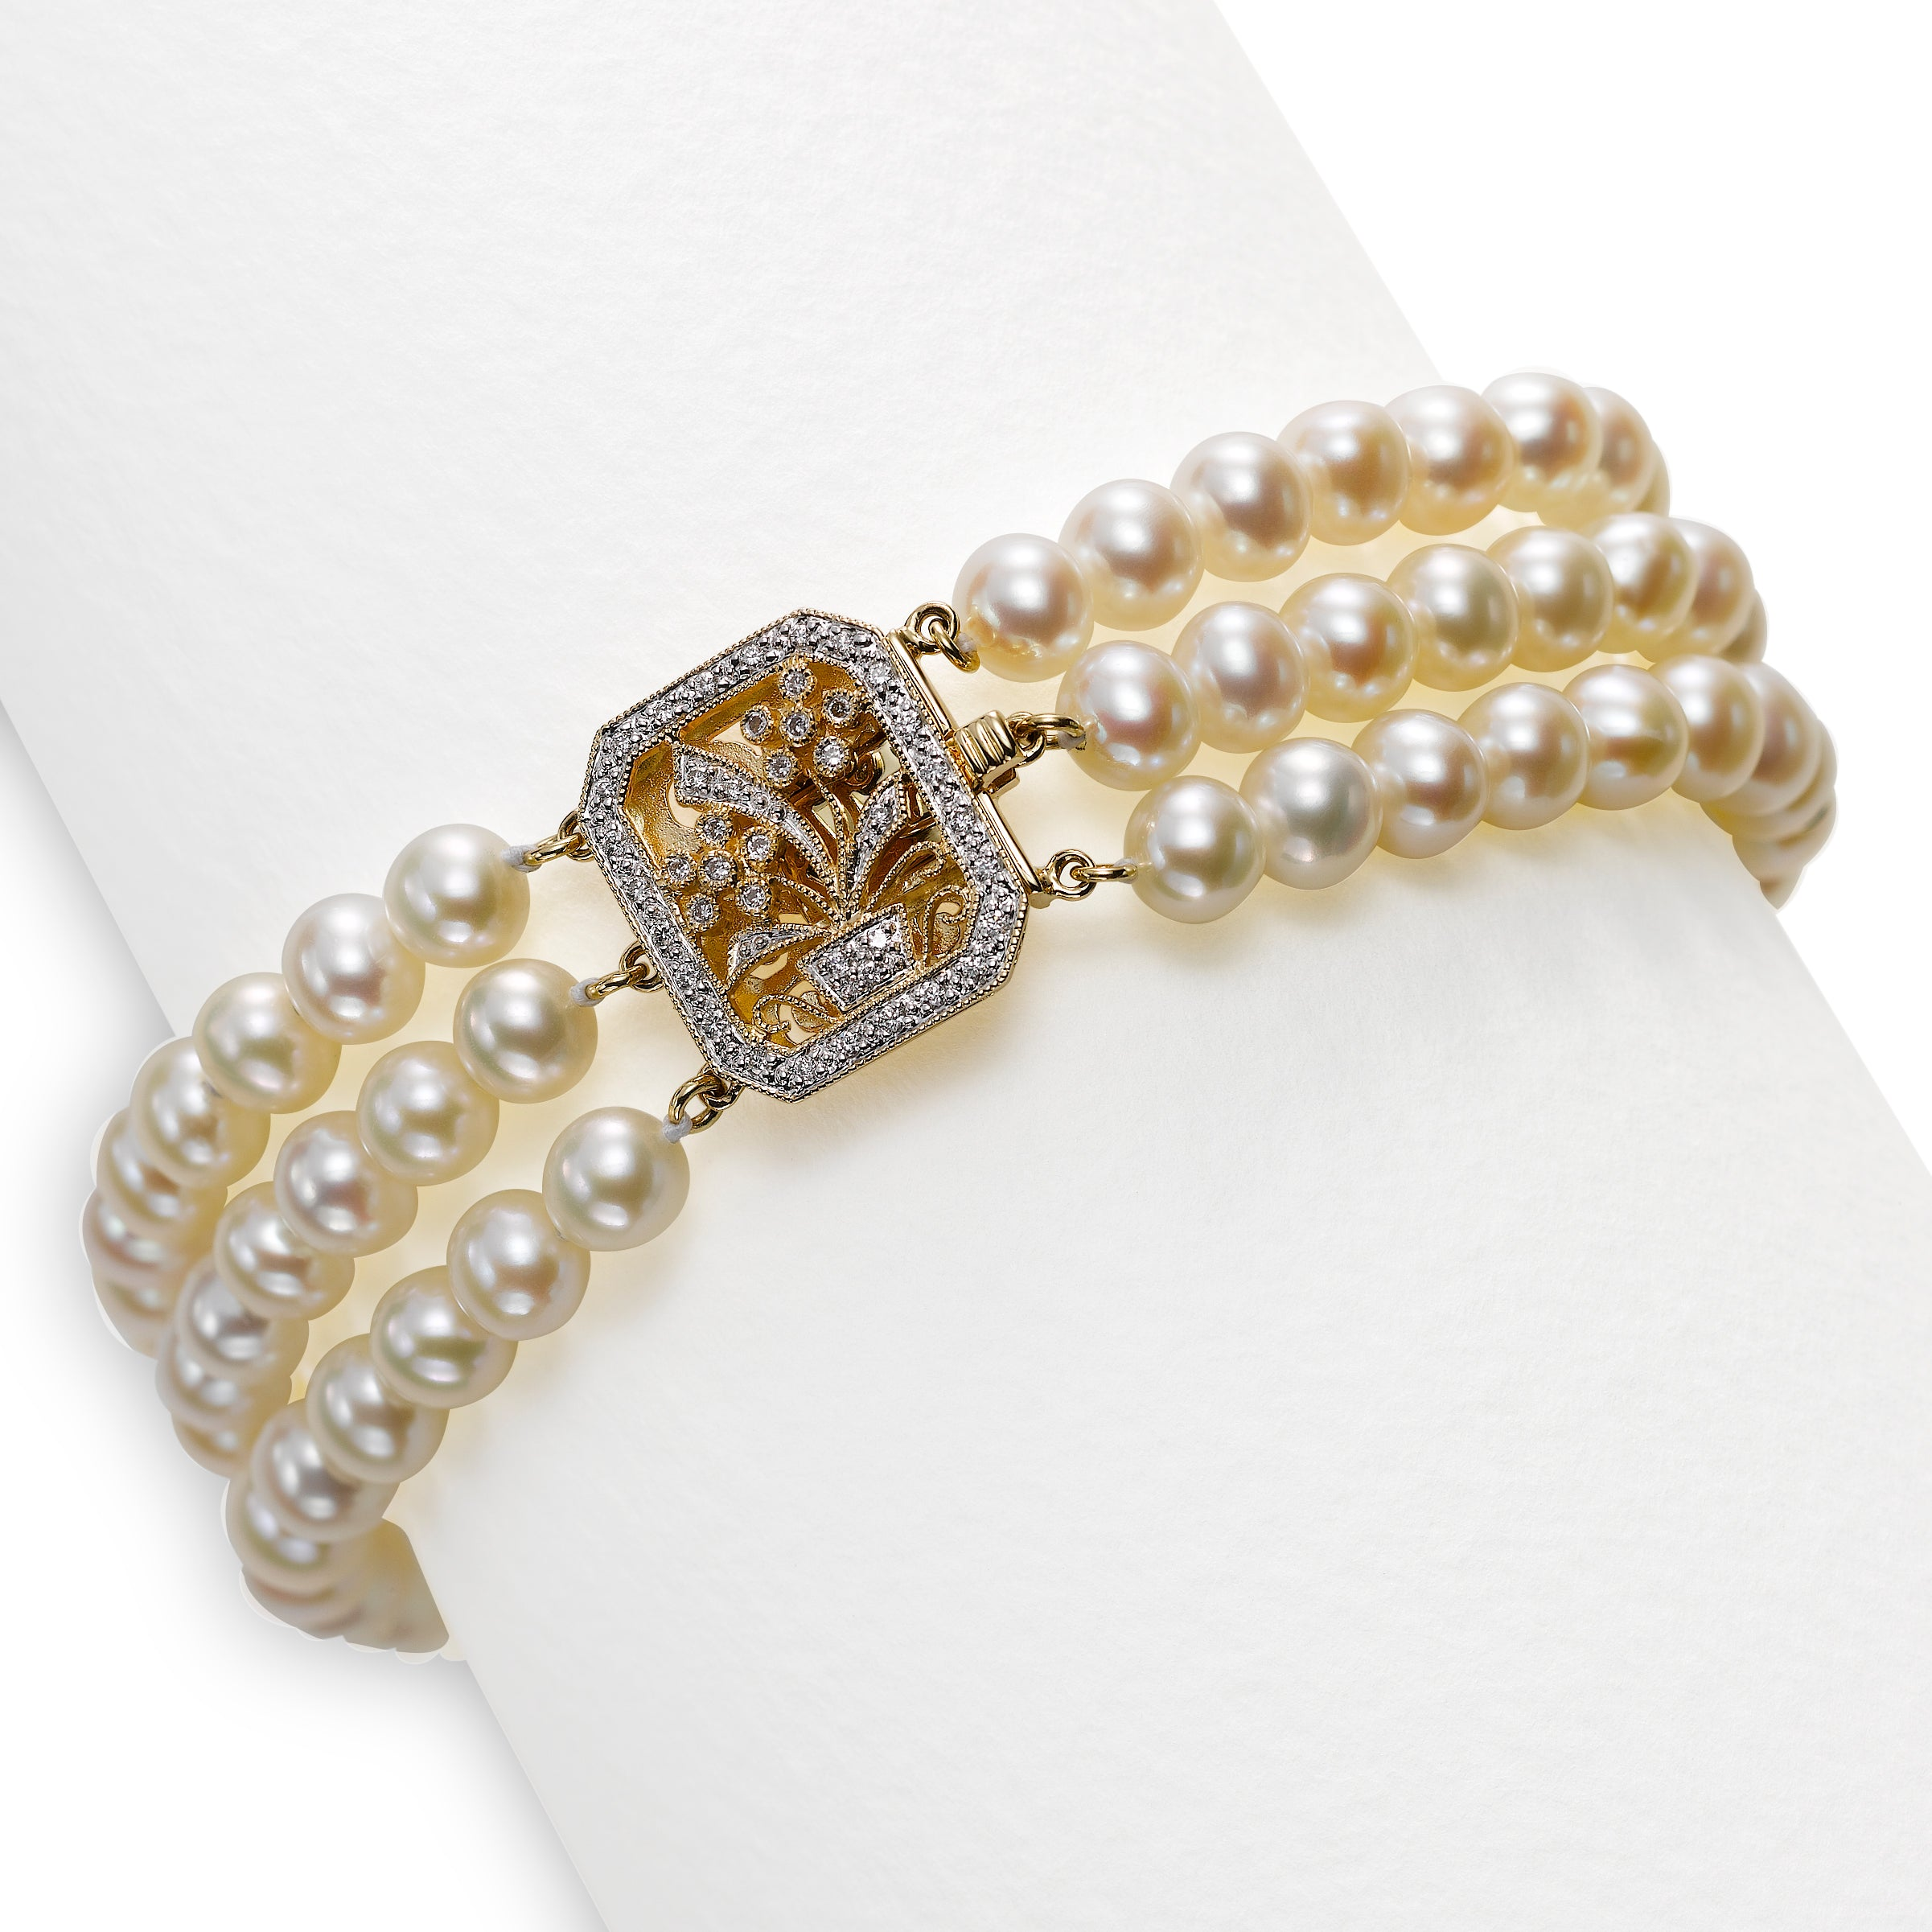 Triple Cultured Pearl And Diamond Bracelet, 14K Yellow Gold